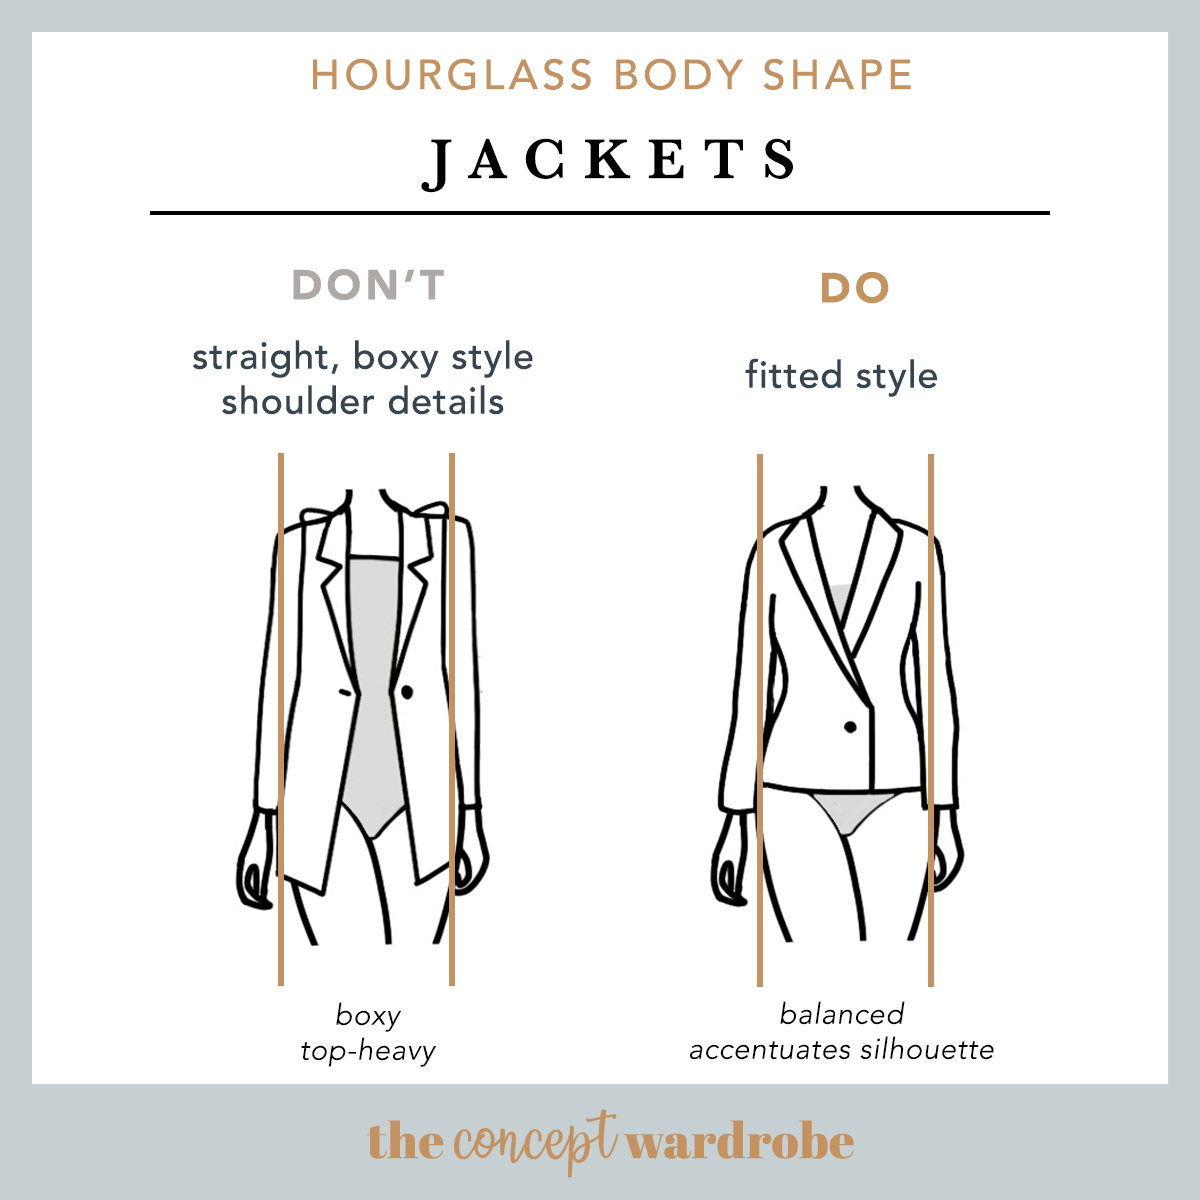 Hourglass Body Shape Jackets Do's and Don'ts - the concept wardrobe